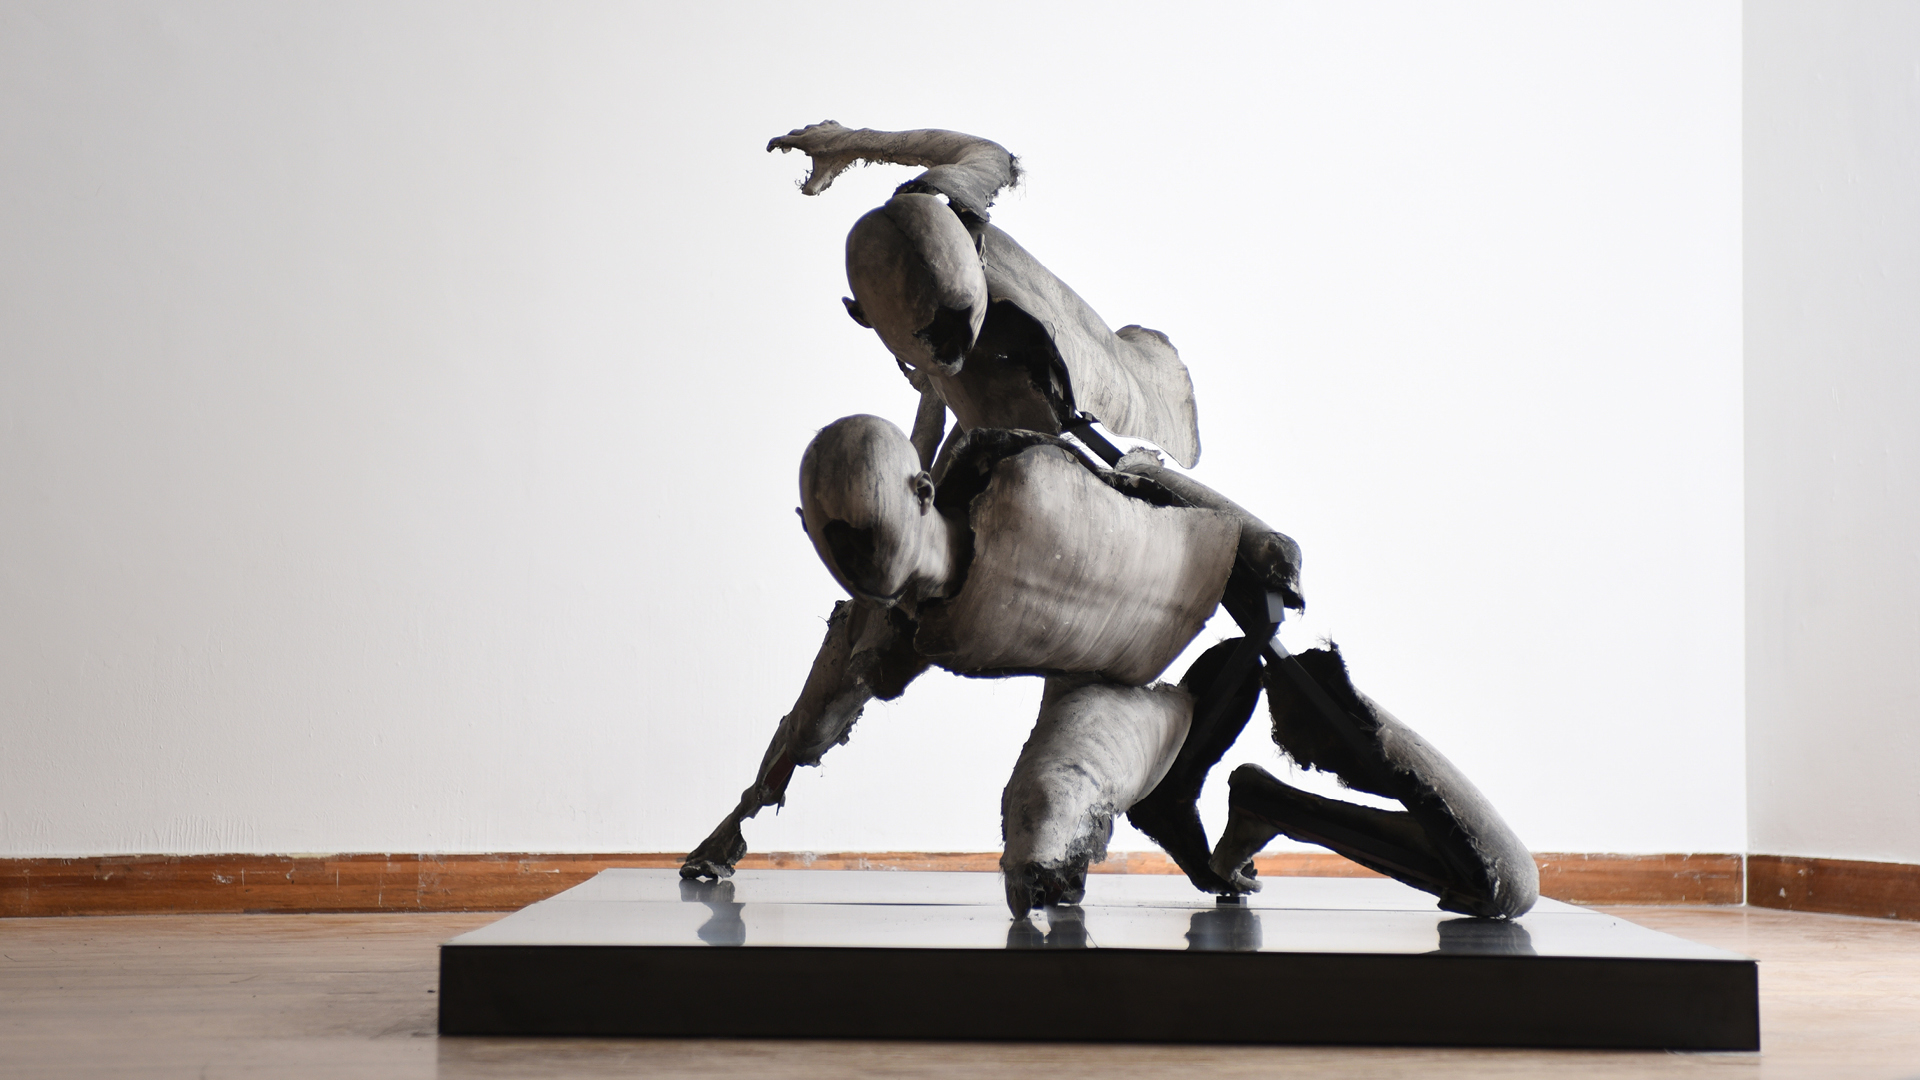 From The Amphitheater Series, Uffizi Wrestlers, 2016 | Park Kipyung | STIRworld